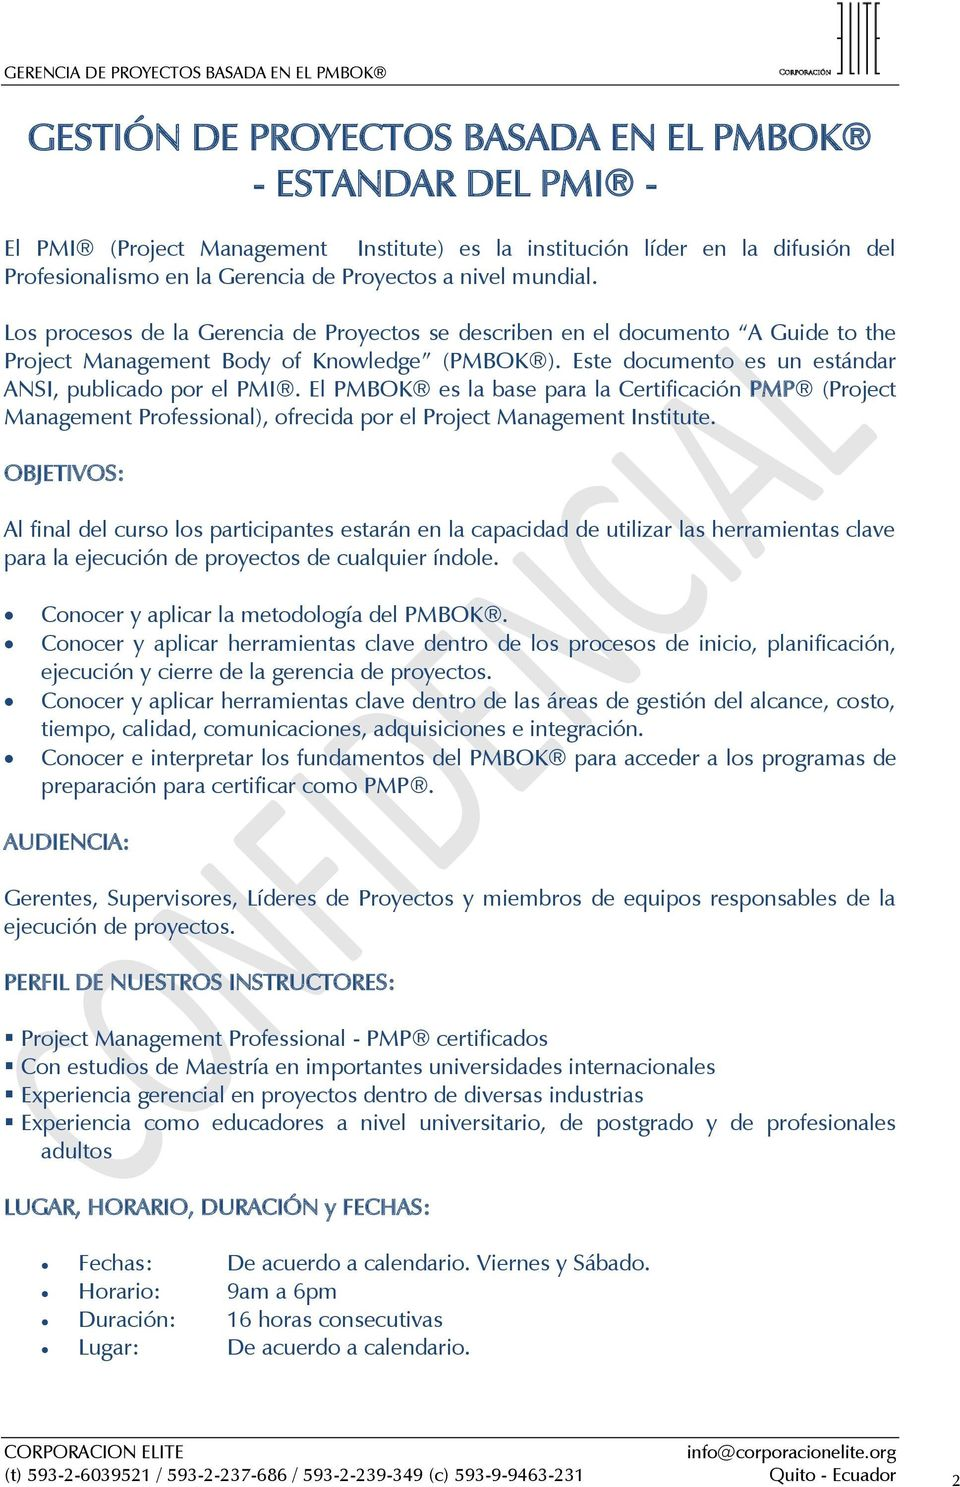 El PMBOK es la base para la Certificación PMP (Project Management Professional), ofrecida por el Project Management Institute.